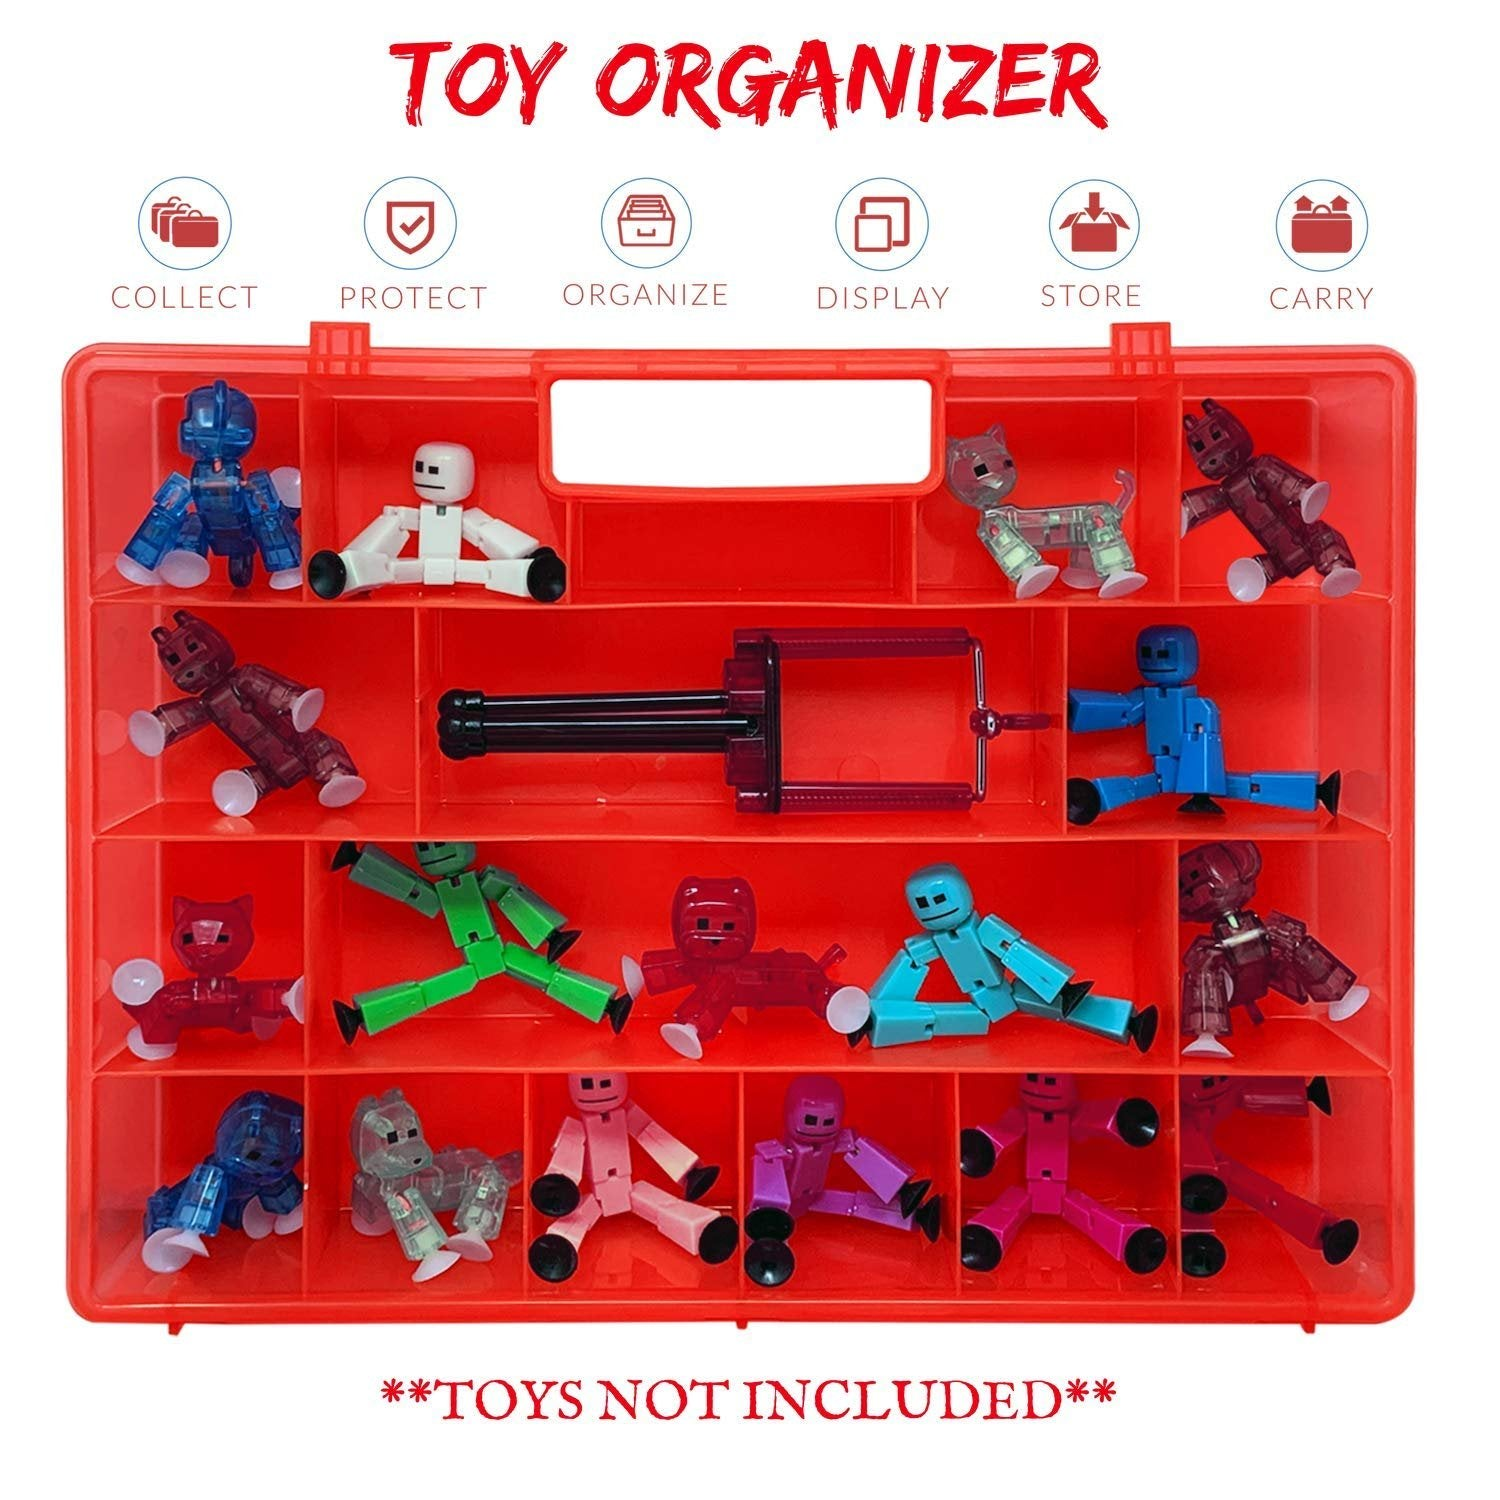 Life Made Better Toy Case, Sturdy & Reinforced Red Mini Figure Toy Storage Case, Compatible with Stickbots, not Created by Stickbots